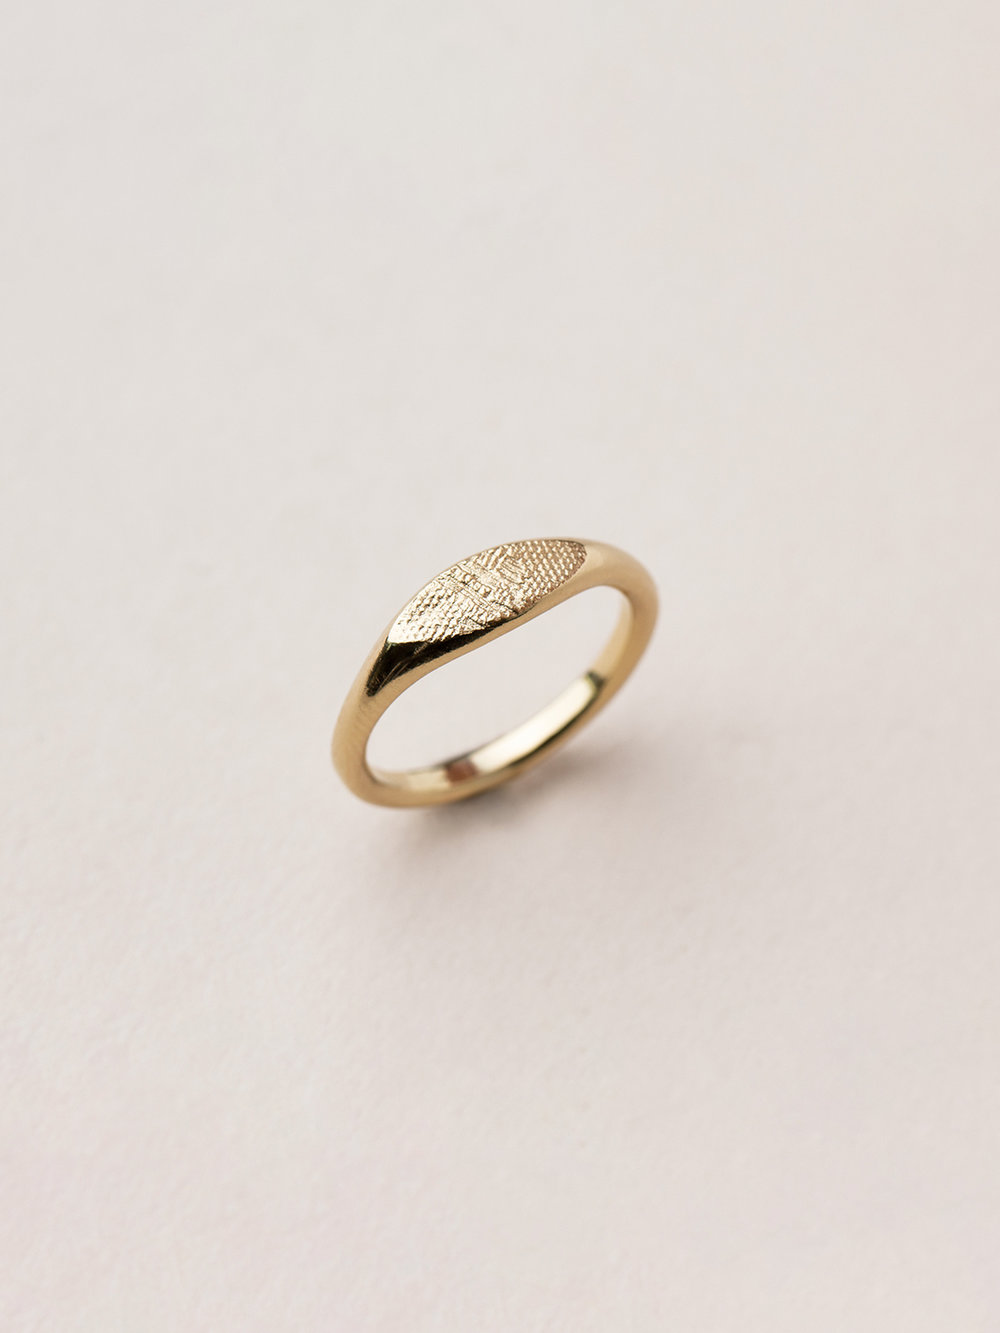 Schmaler Amia Ring in 585 Gold  Signet ring, small Amia in 14kt gold